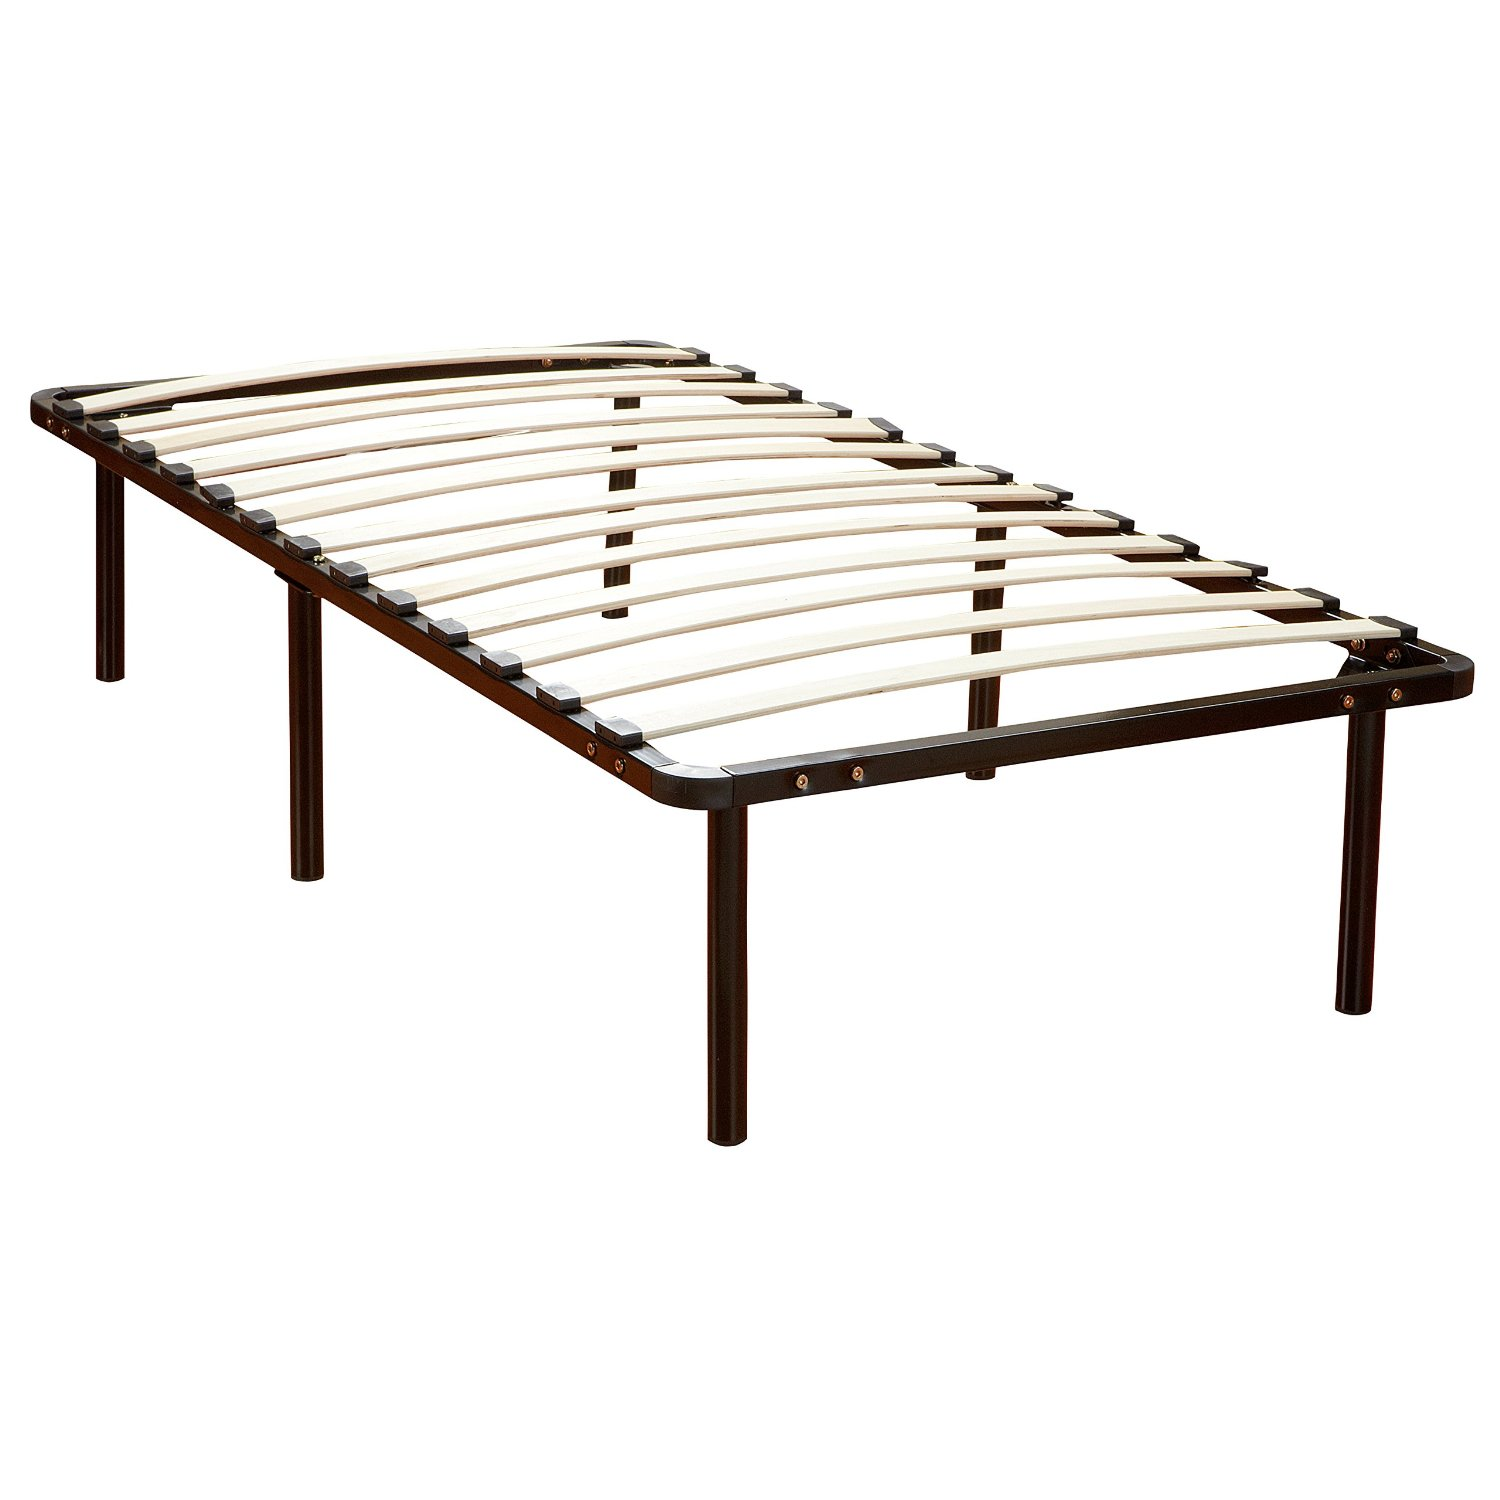 Mattress for platform bed with slats - Classic Sleep Europa Wood Slat And Metal Platform Bed Frame Mattress Foundation